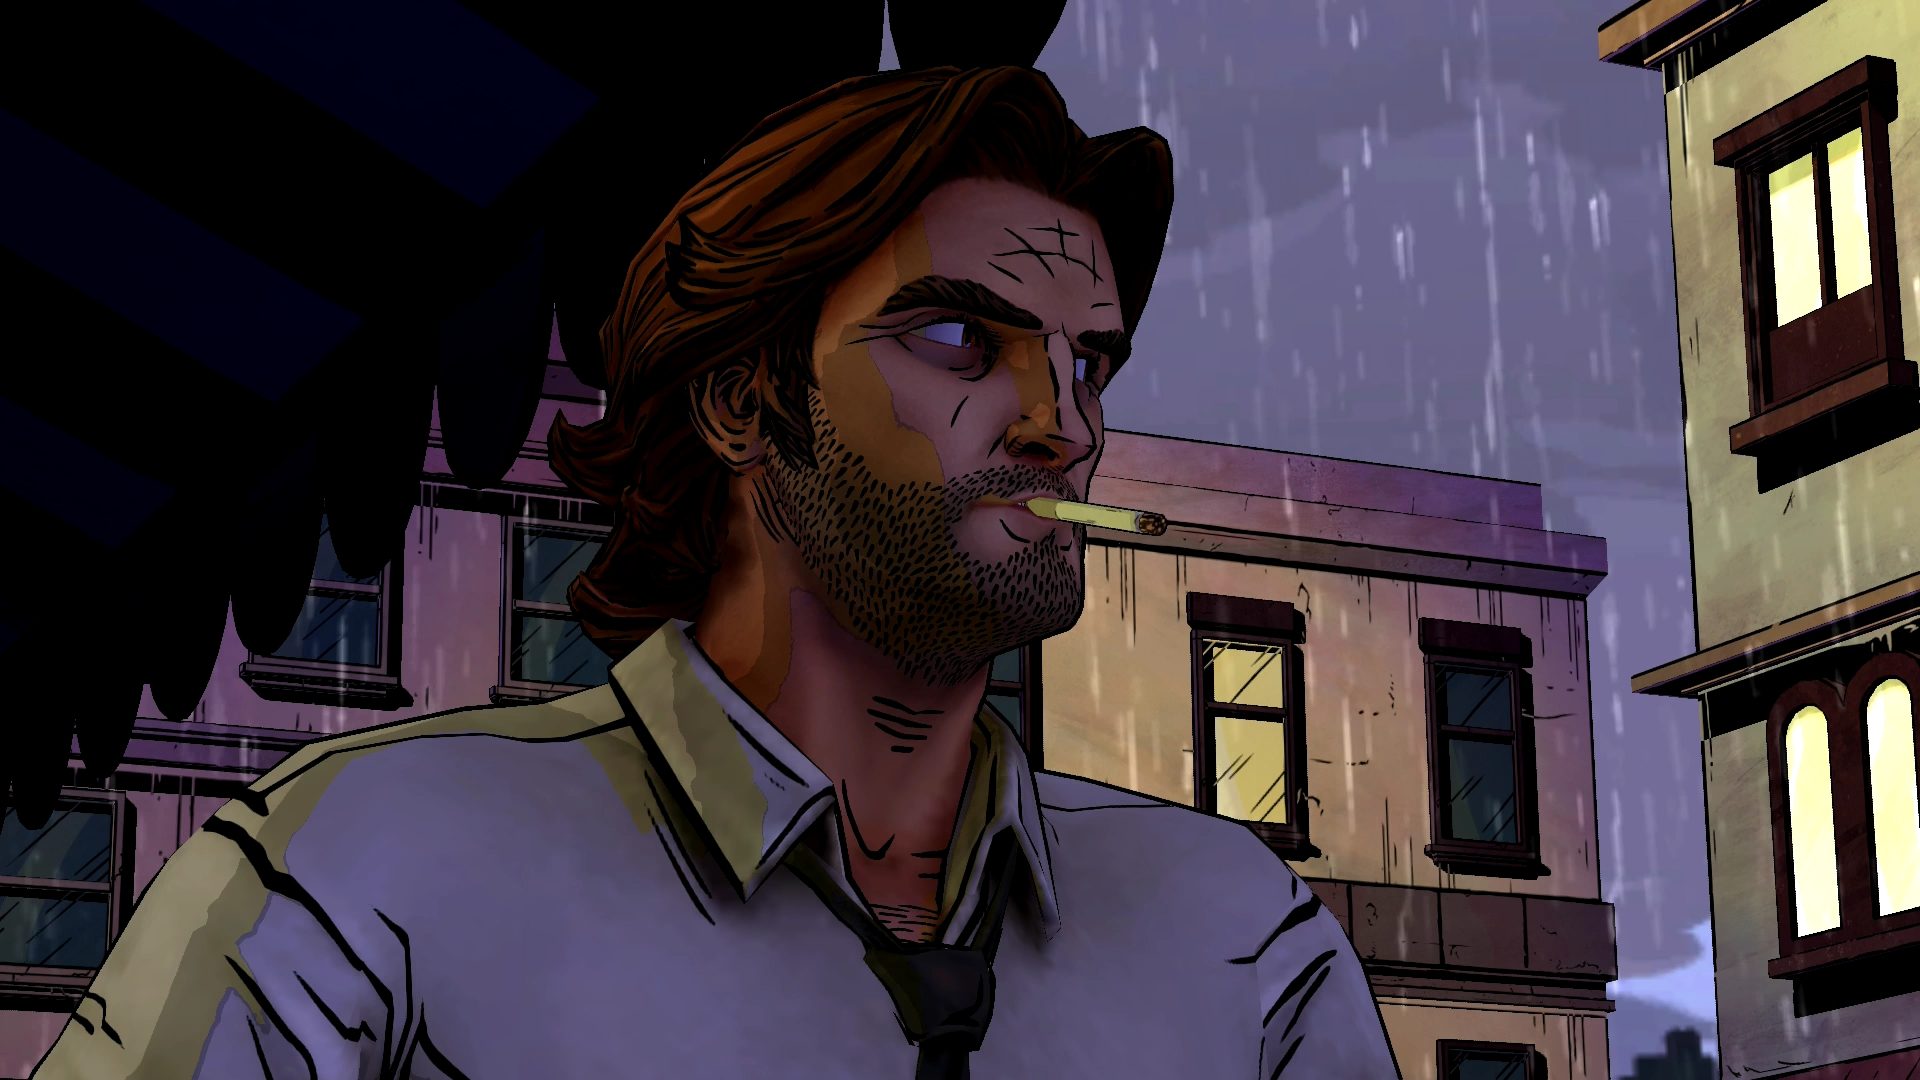 Backseat Game : Le polar The Wolf Among Us